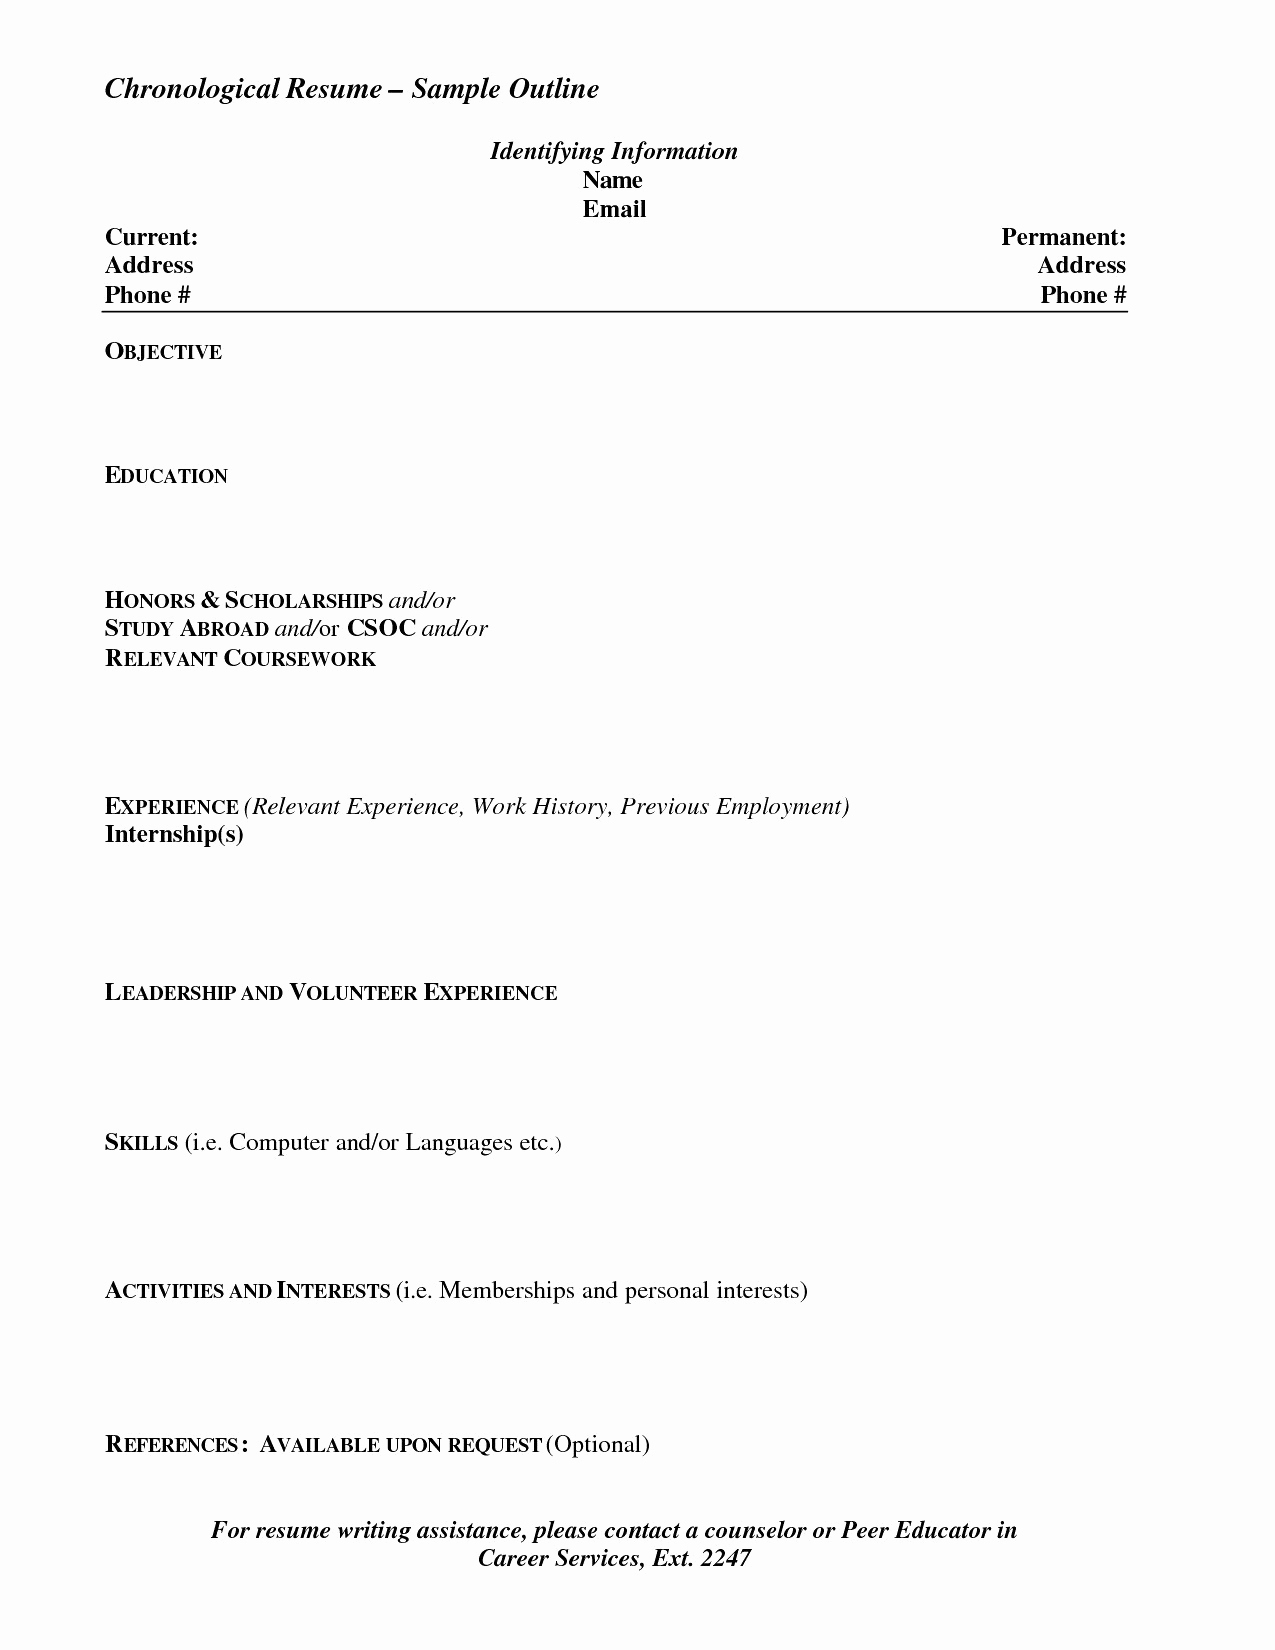 Ocs Resume Template - Ocs Resume Template 19 Fresh Free Resume Writing Services – Resume